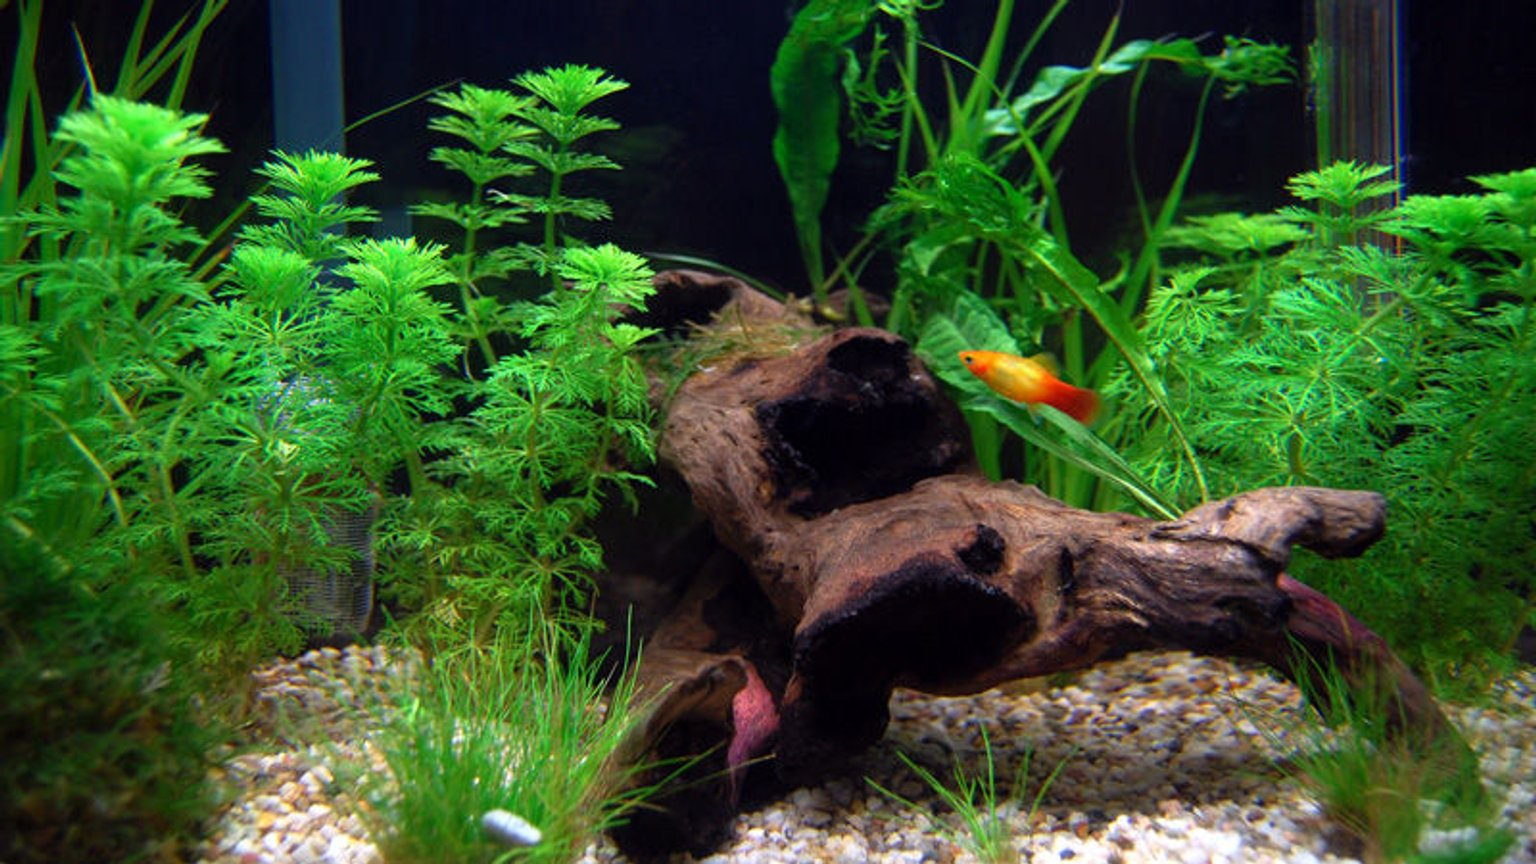 planted tank (mostly live plants and fish) - 65 litre tank, mainly platies